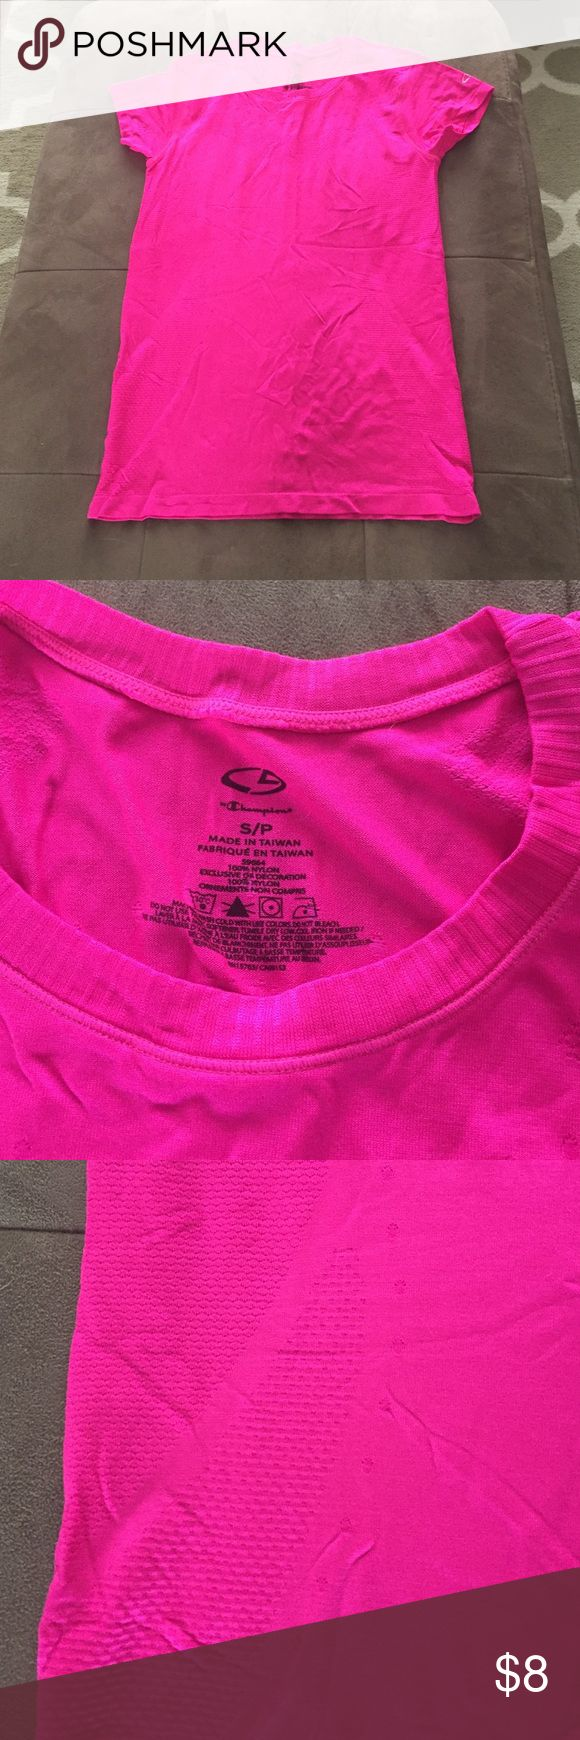 Neon pink workout shirt Like new, hot pink vented workout shirt. Bought this at target last summer, took off the tags and never wore. Super cute short with no flaws! Champion Tops Tees - Long Sleeve